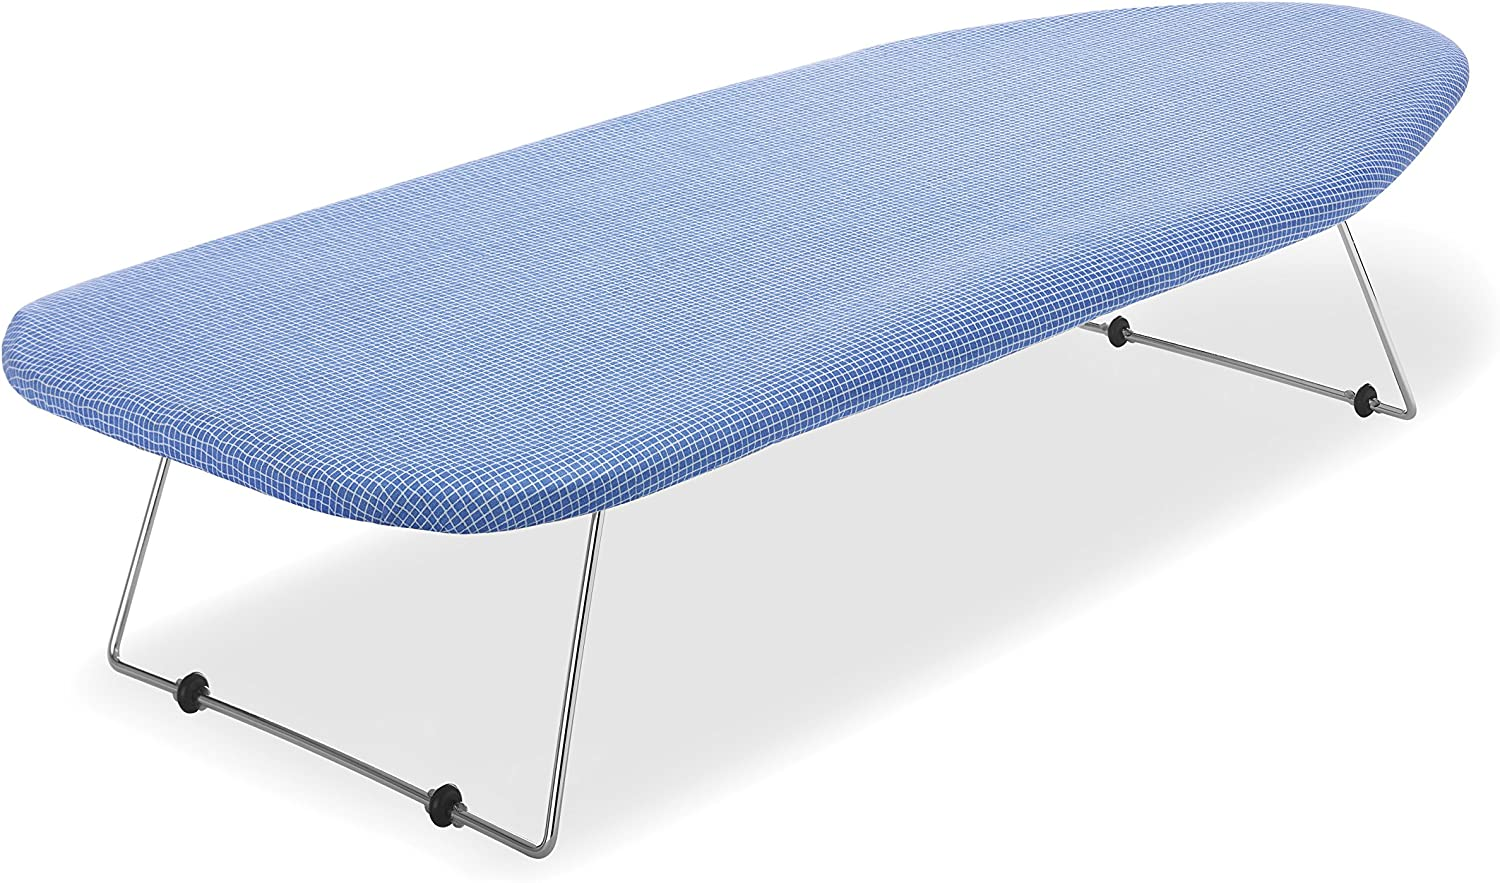 Whitmor Tabletop Ironing Board with Scorch Resistant Cover Image